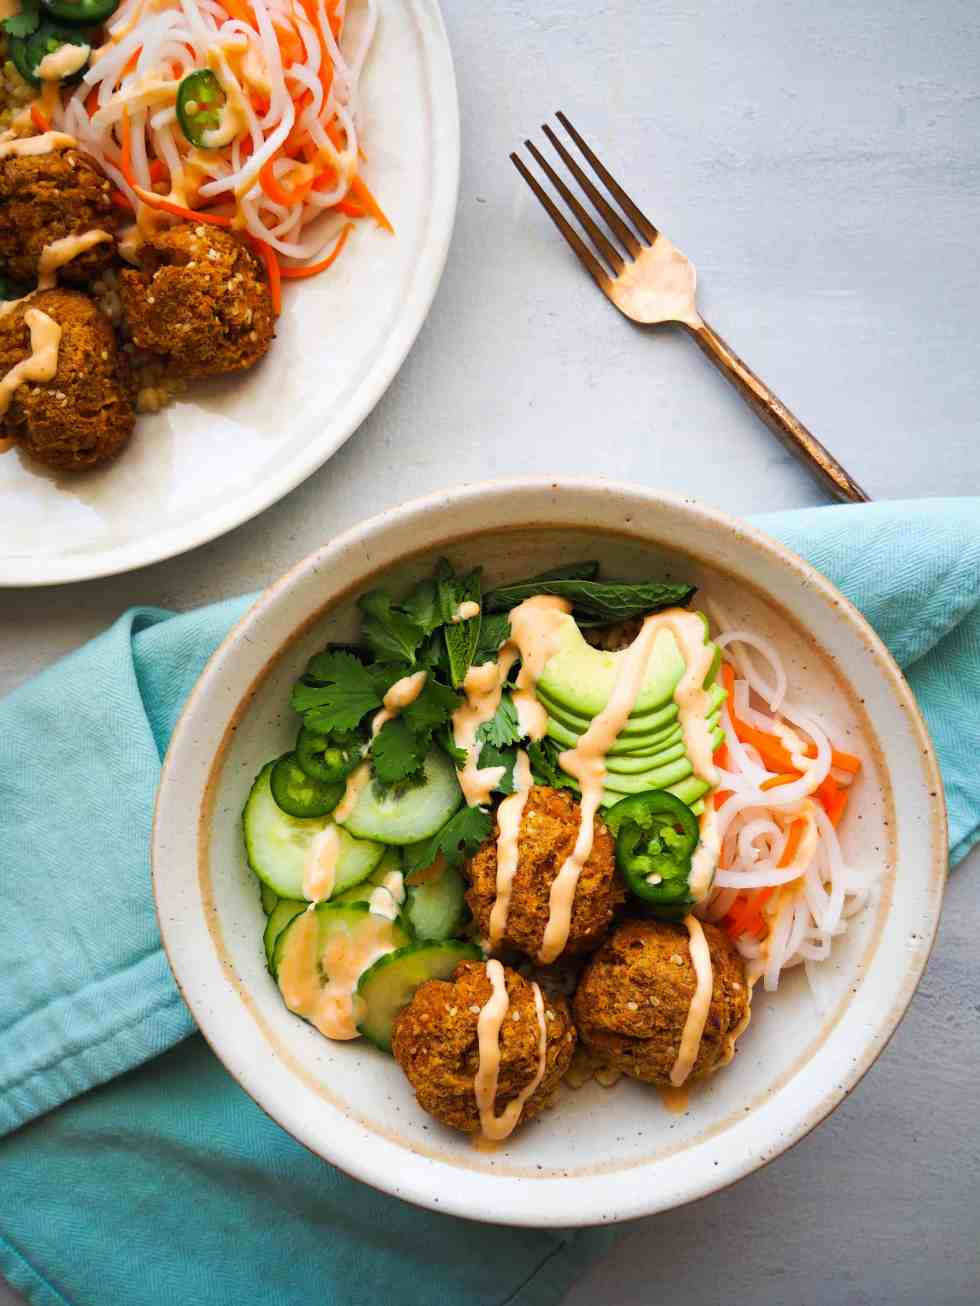 Bowl recipes.Banh Mi Bowl with tofu meatballs in white bowl with blue napkin against grey background.